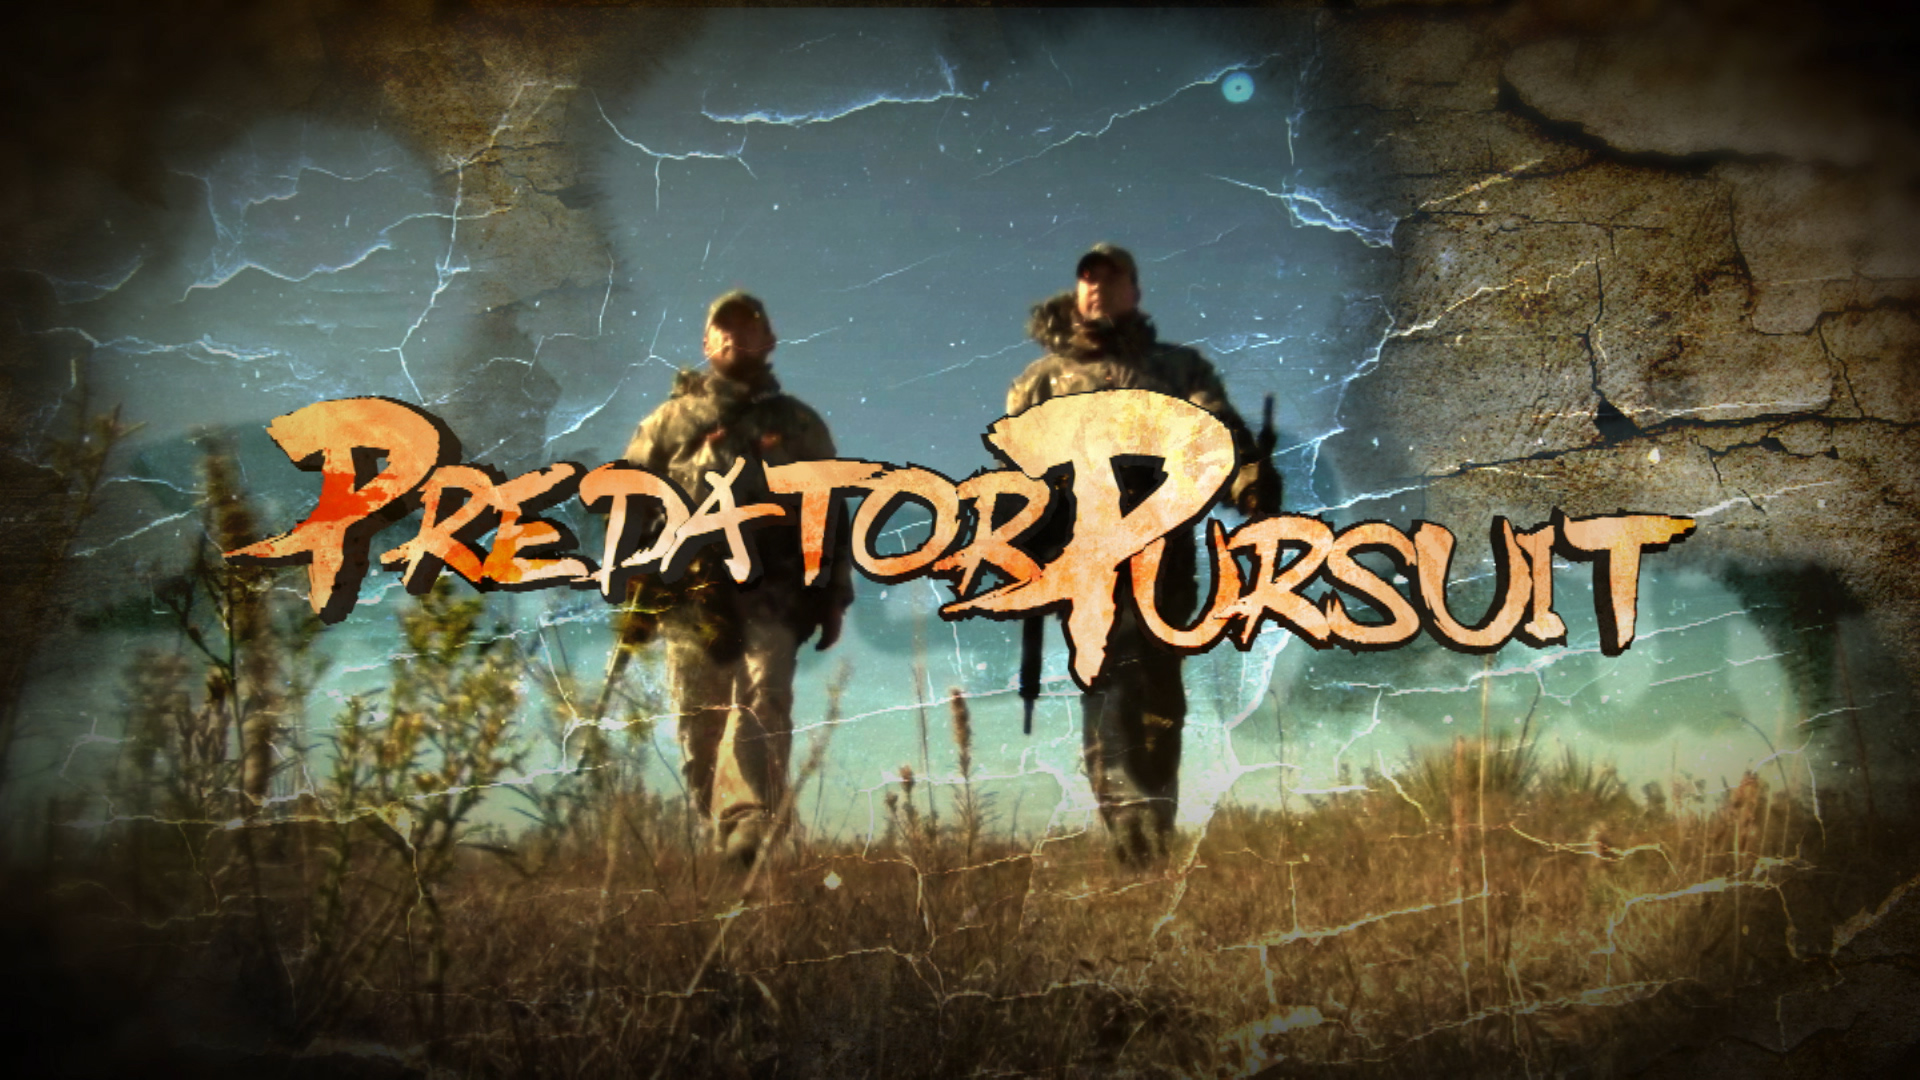 Predator Pursuit TV Show Opener